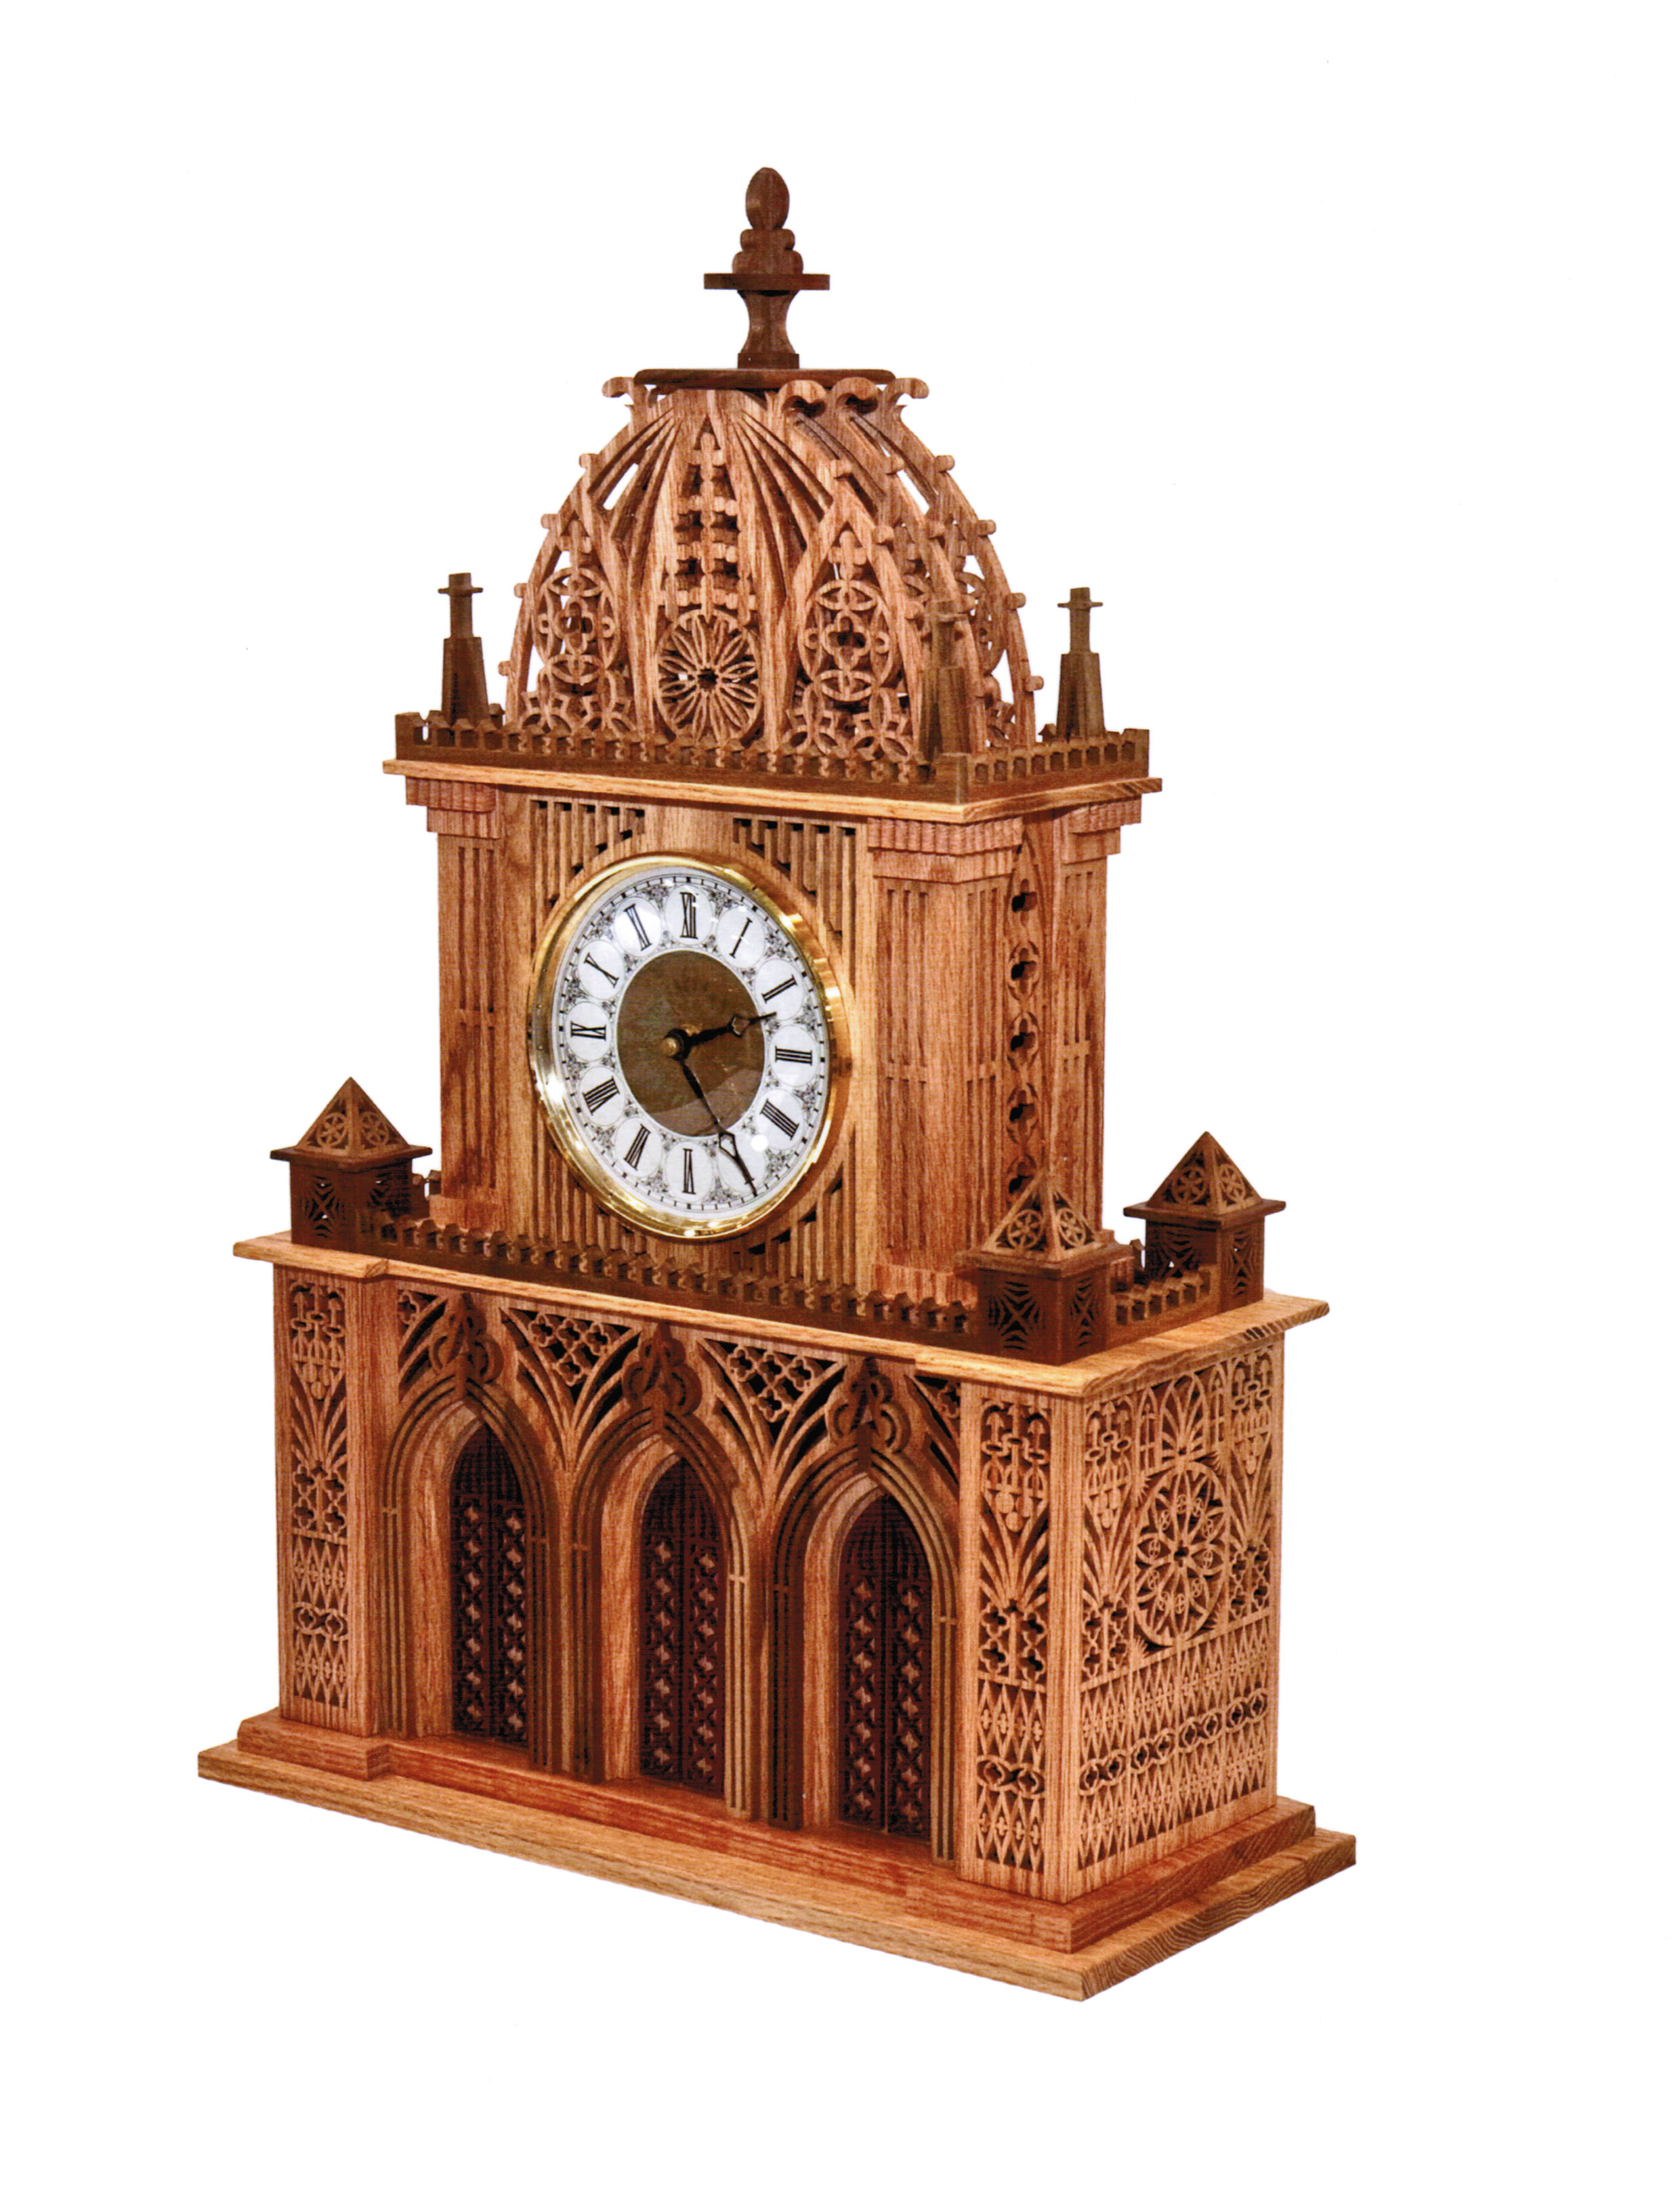 Wilckens woodworking large clock patterns larger picture amipublicfo Gallery